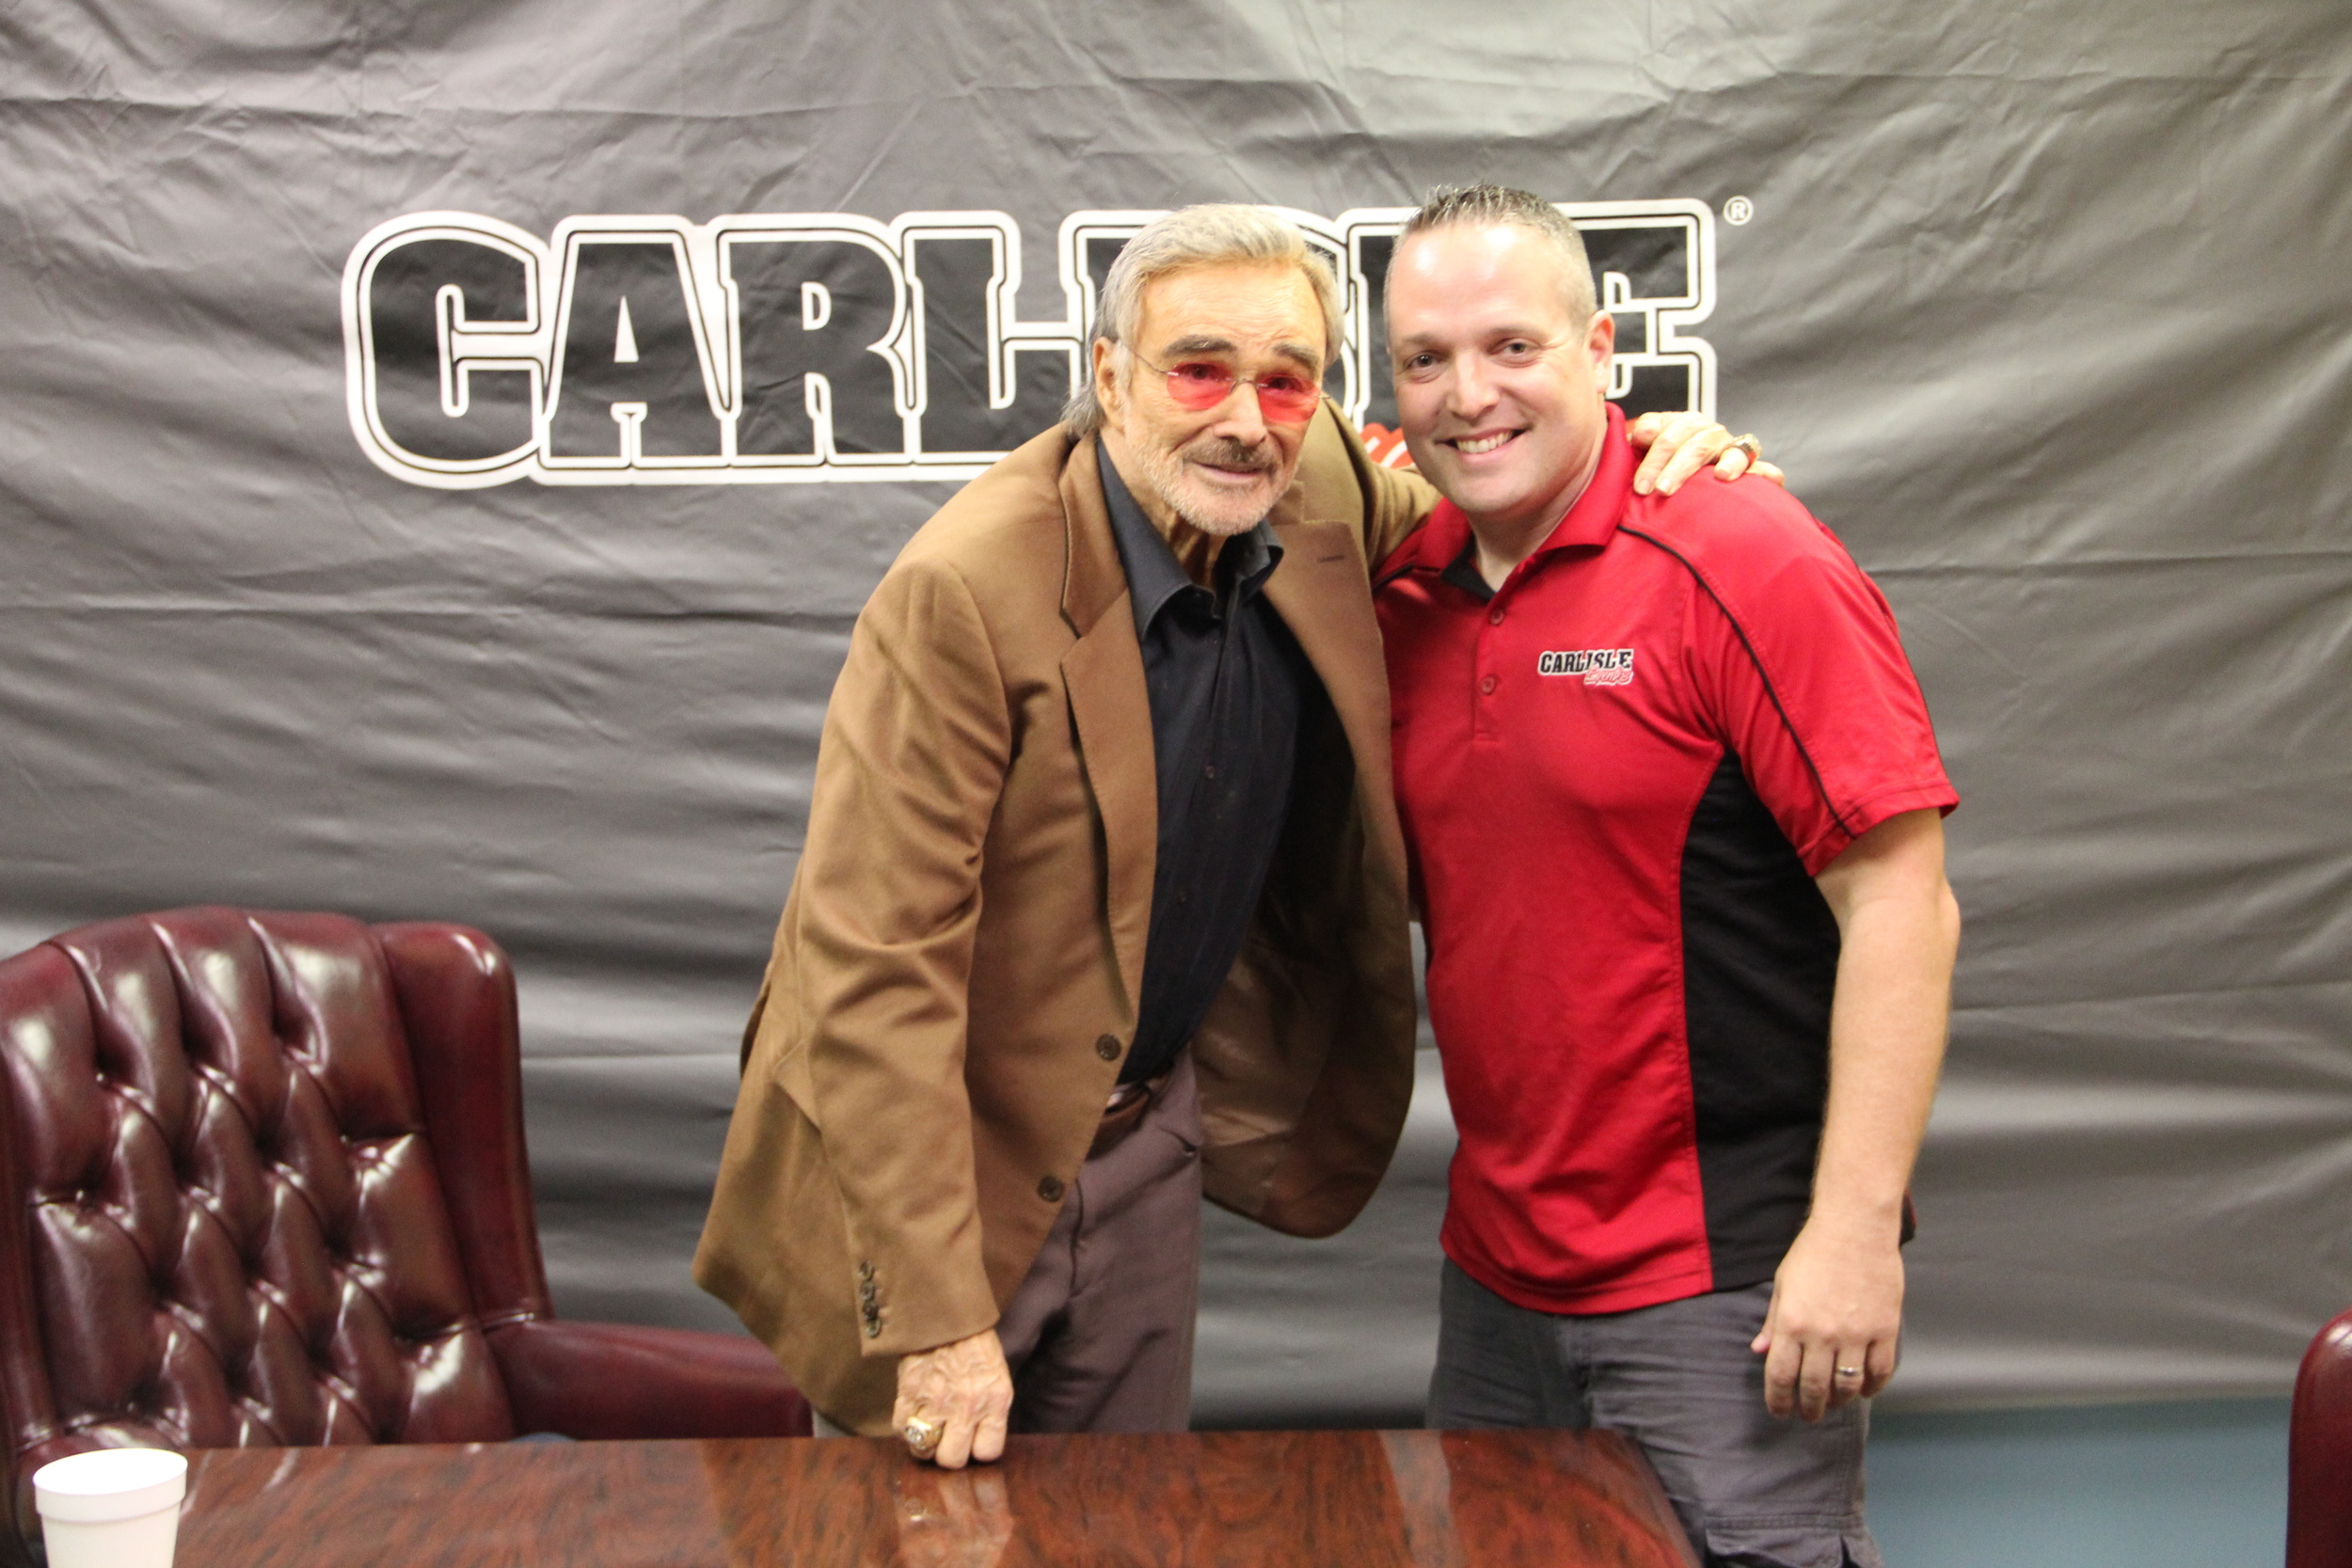 Mike Garland hanging out with the one-and-only Burt Reynolds.